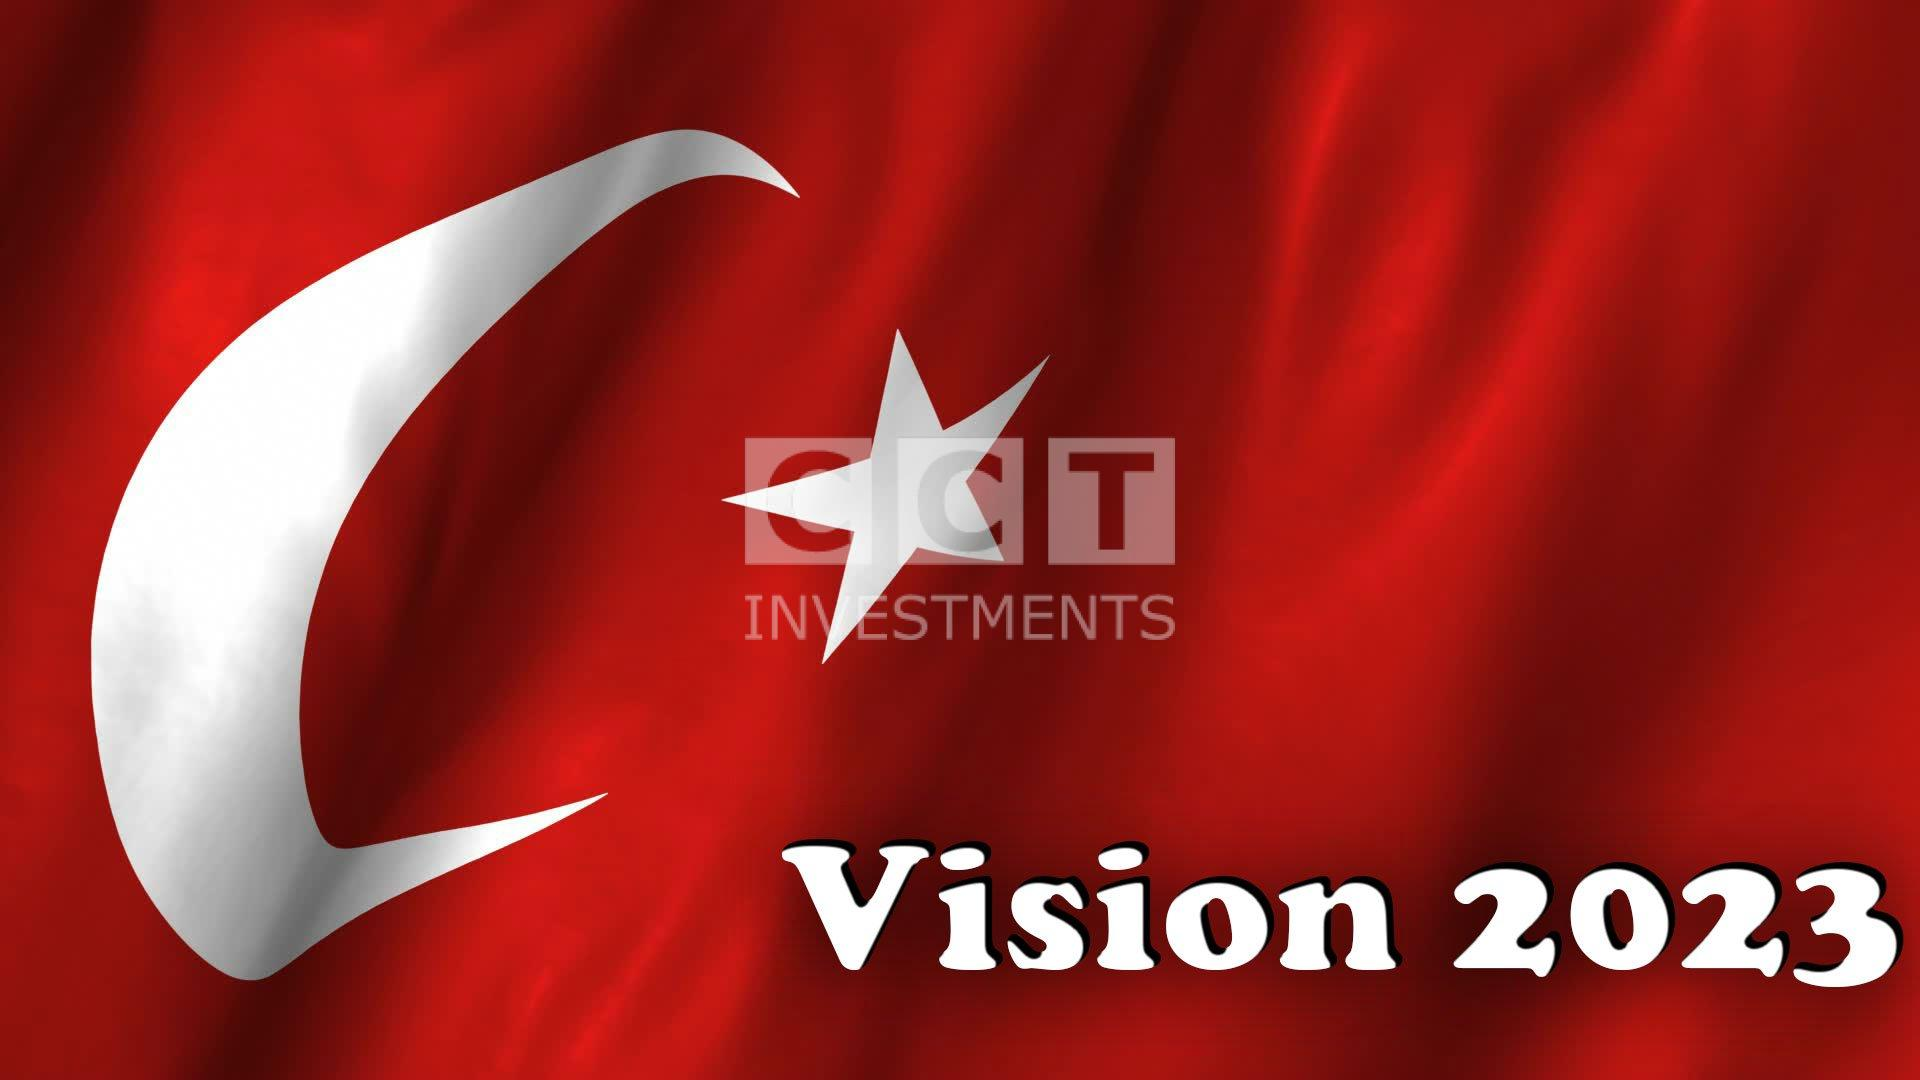 https://www.cctinvestments.com/wp-content/uploads/2016/01/Turkeys-Vision-2023.jpg